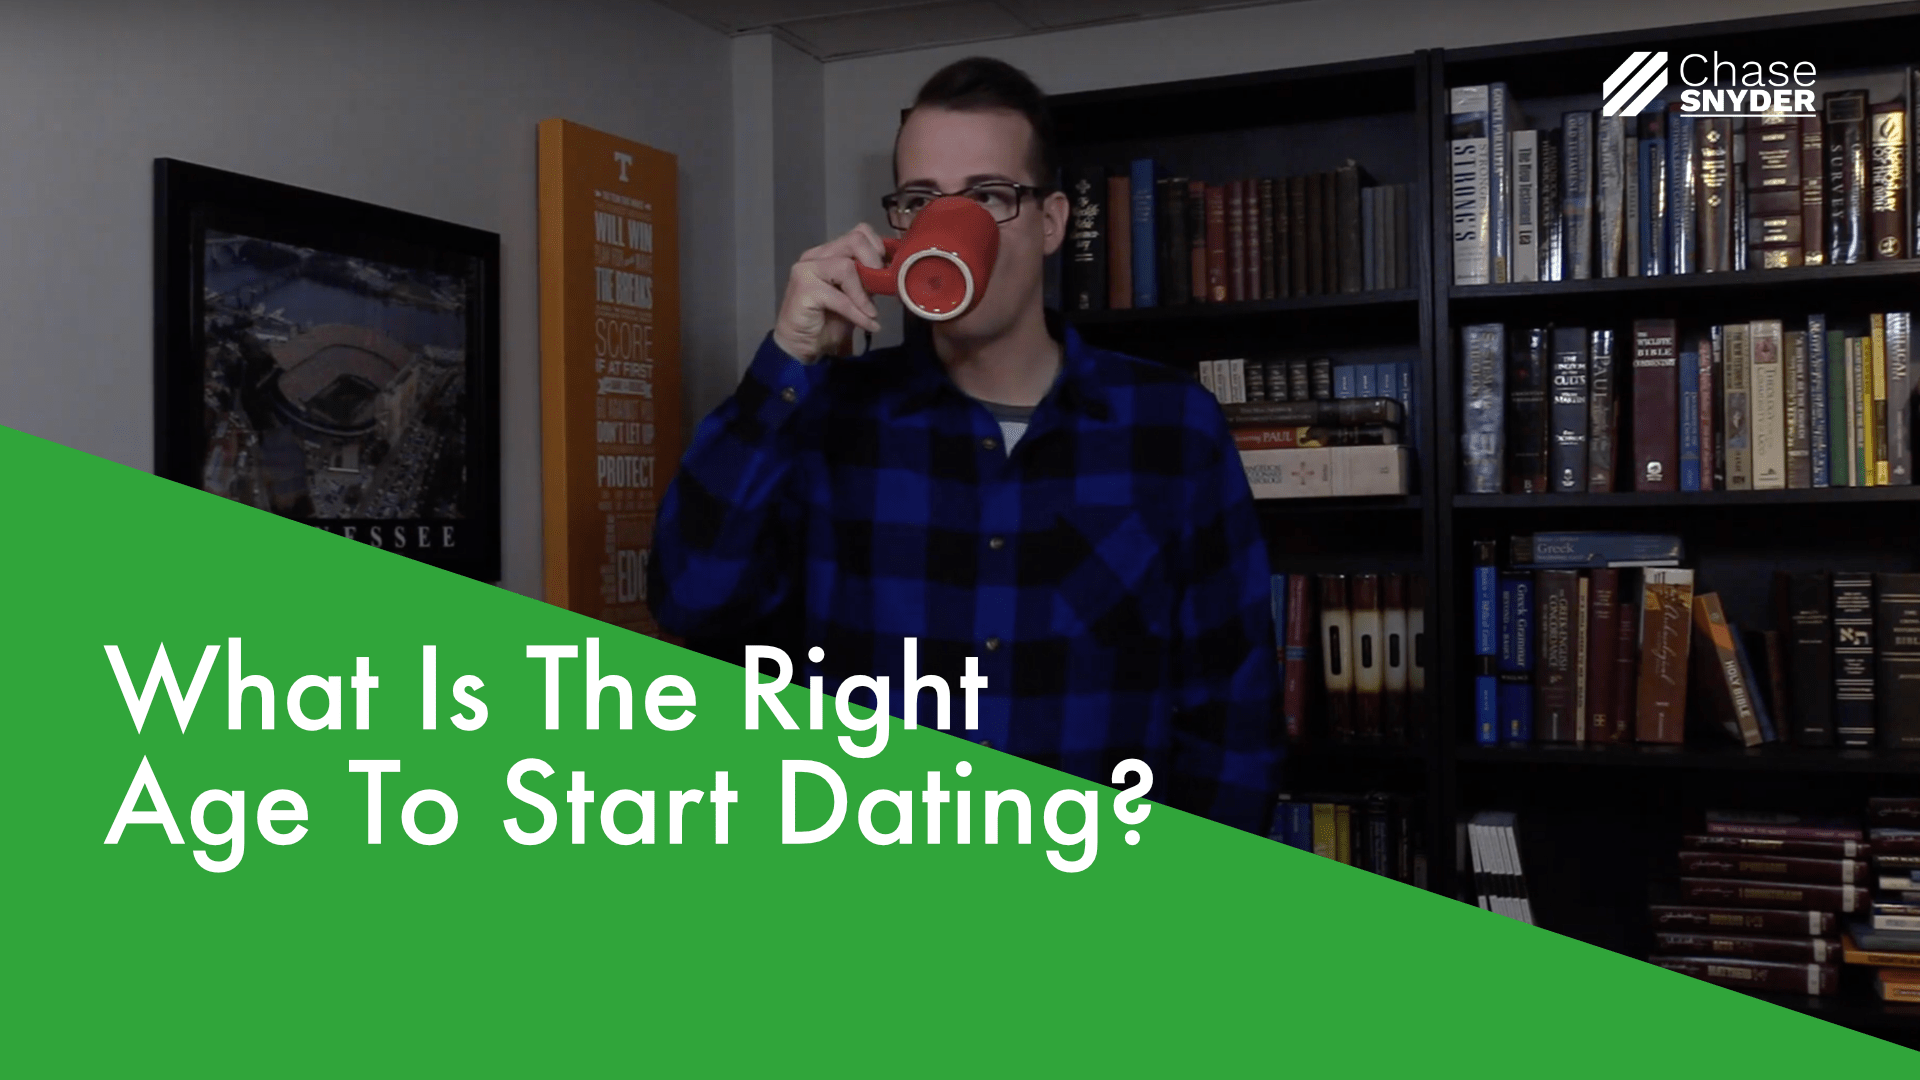 What is a good age to let your daughter start dating